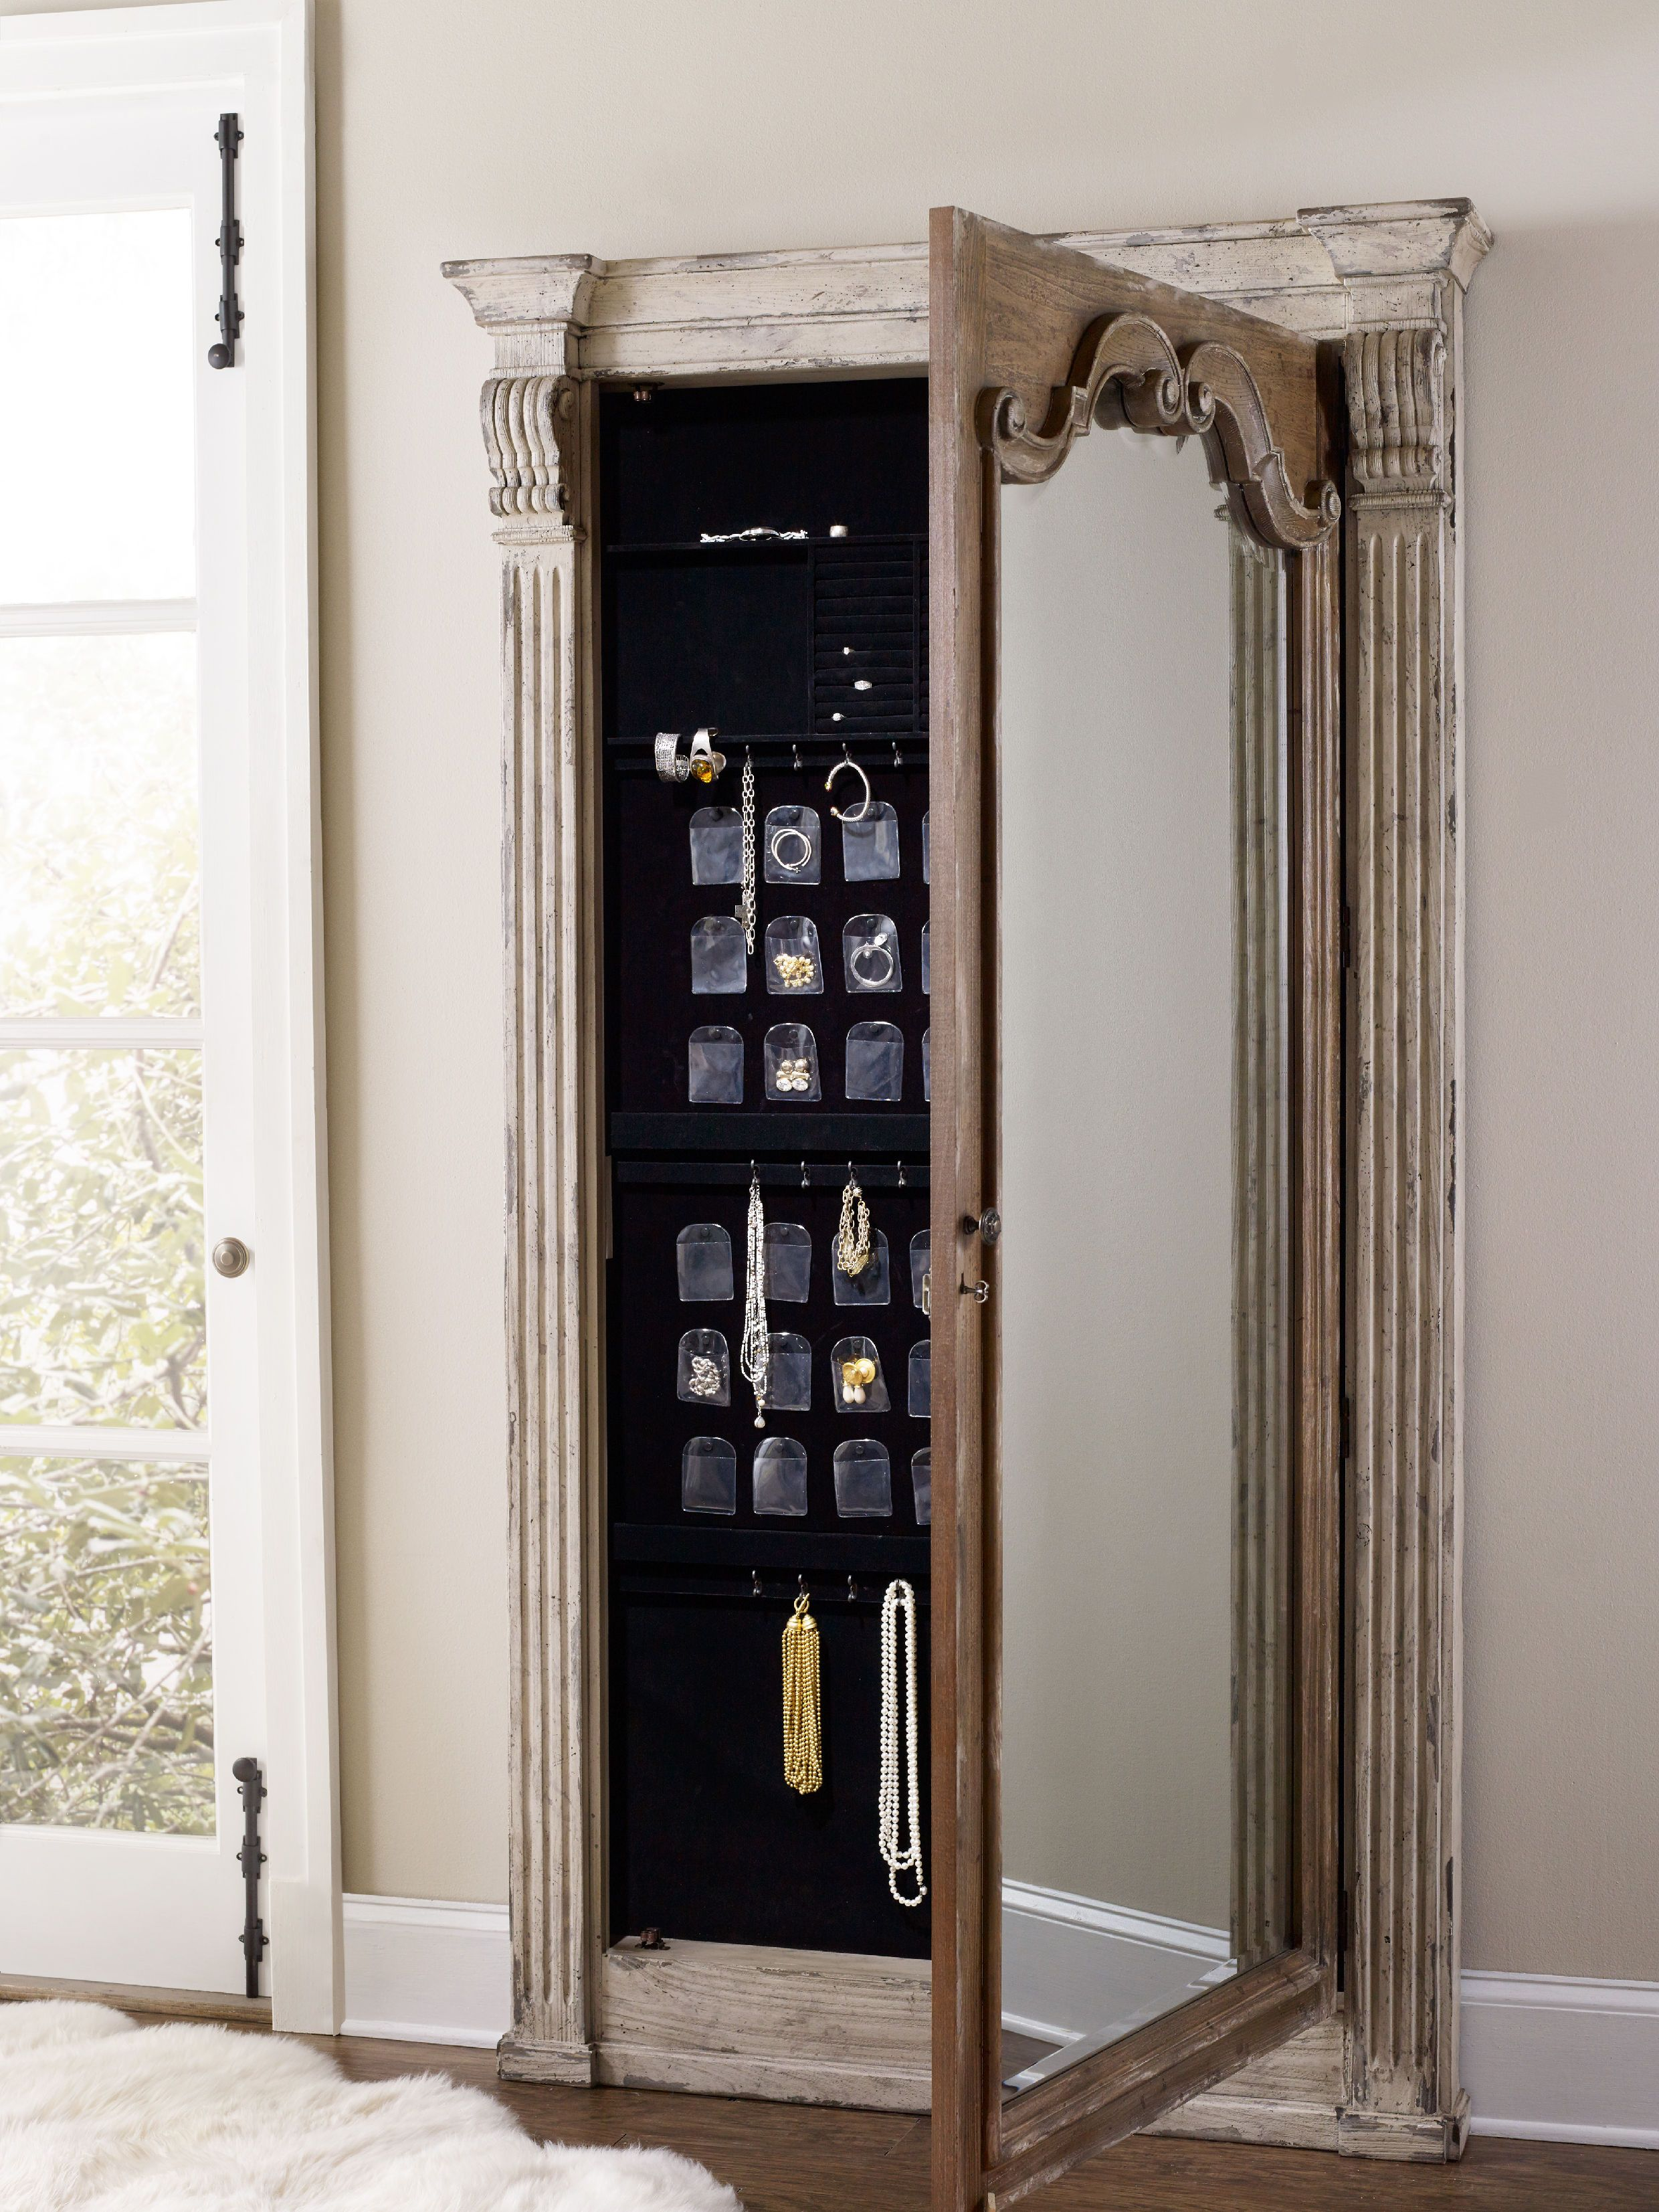 Hooker Furniture Chatelet Floor Mirror wJewelry Armoire Storage